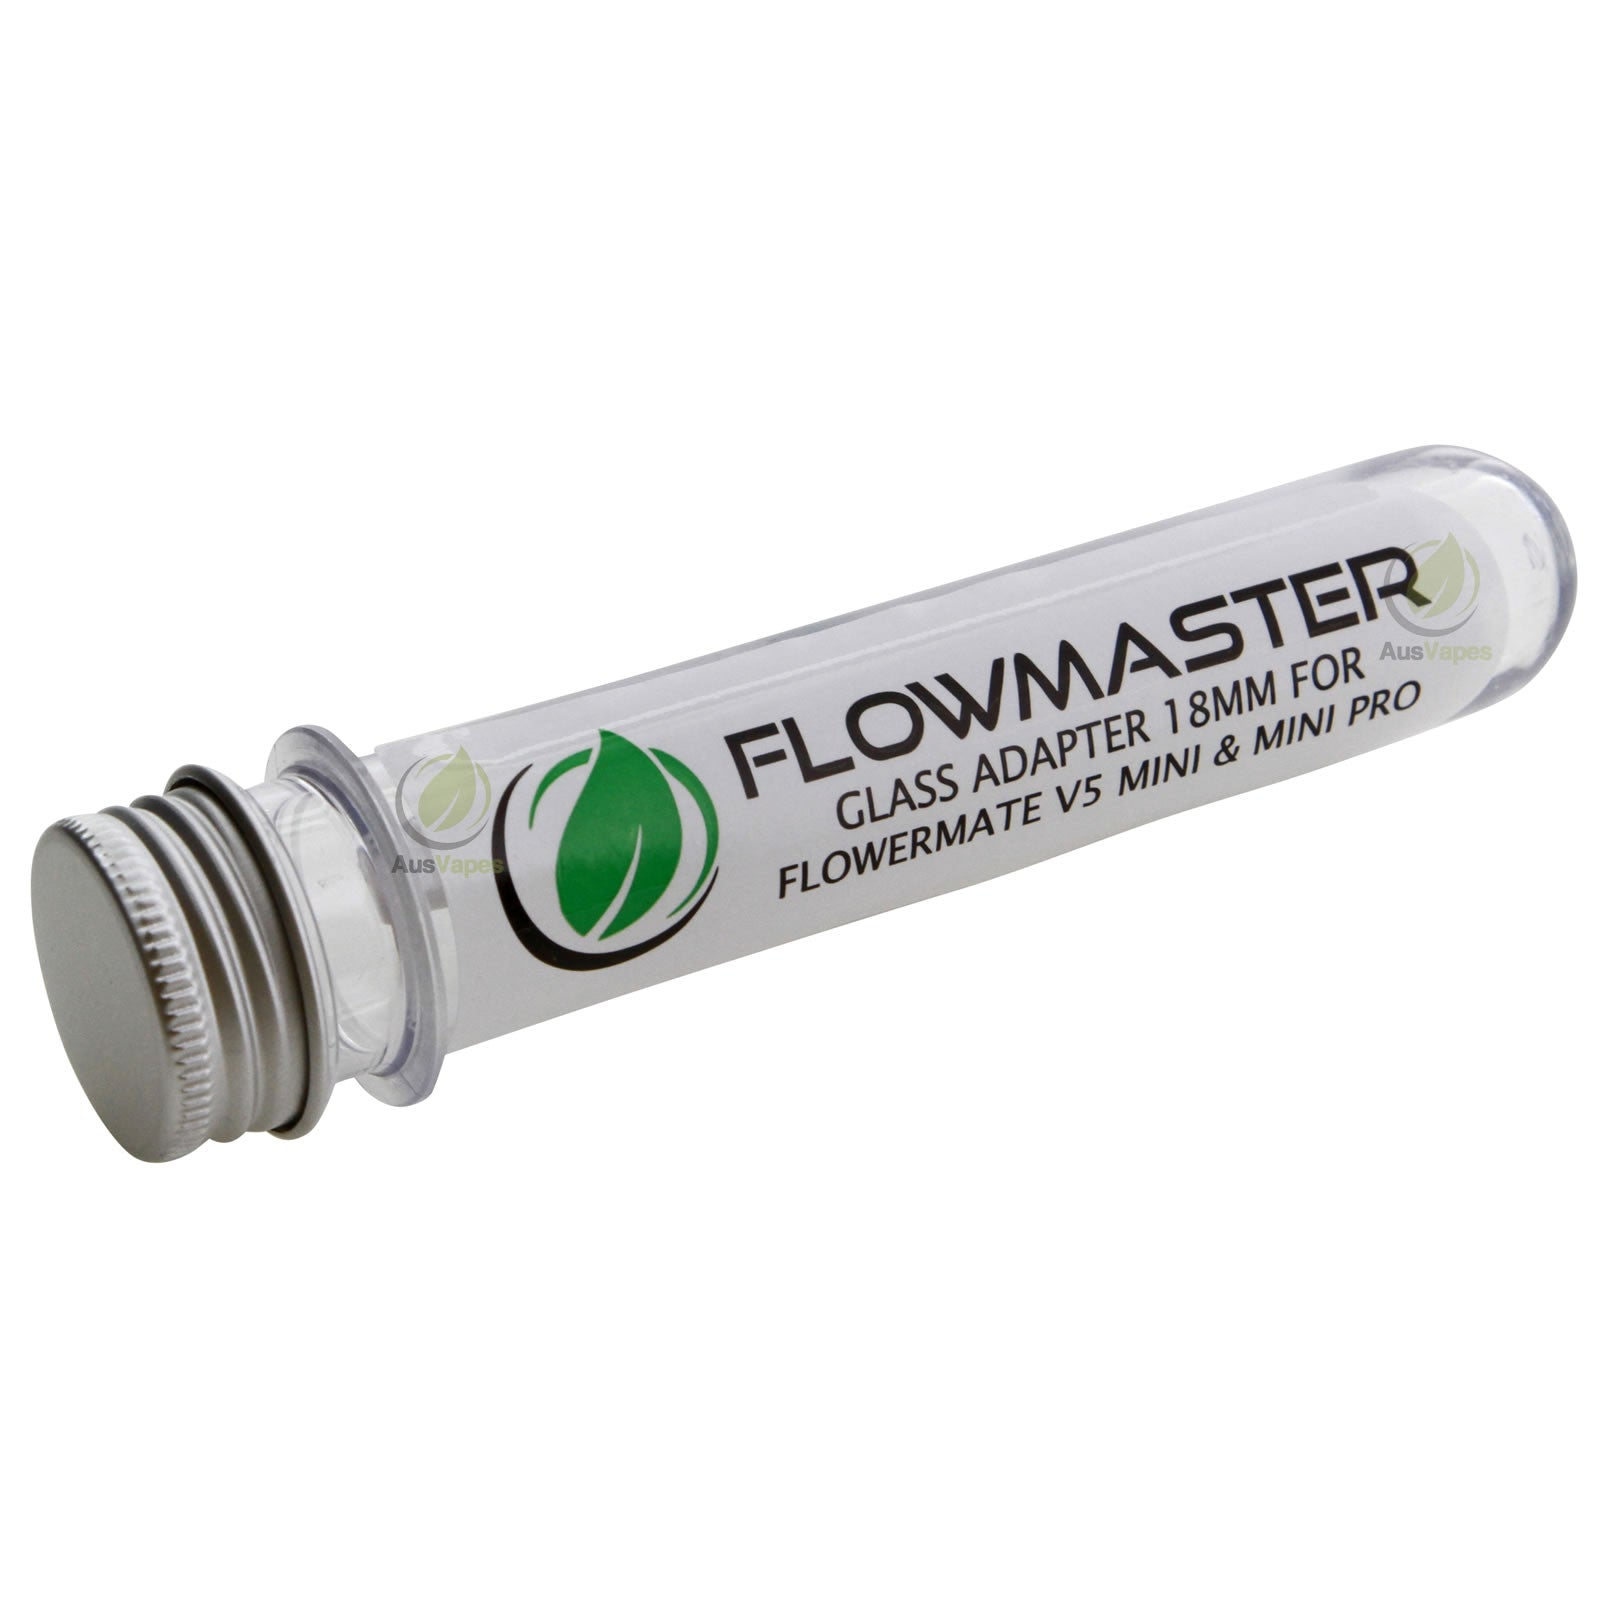 FlowMaster 18mm GonG Adapter for Flowermate V5 Mini / Mini Pro